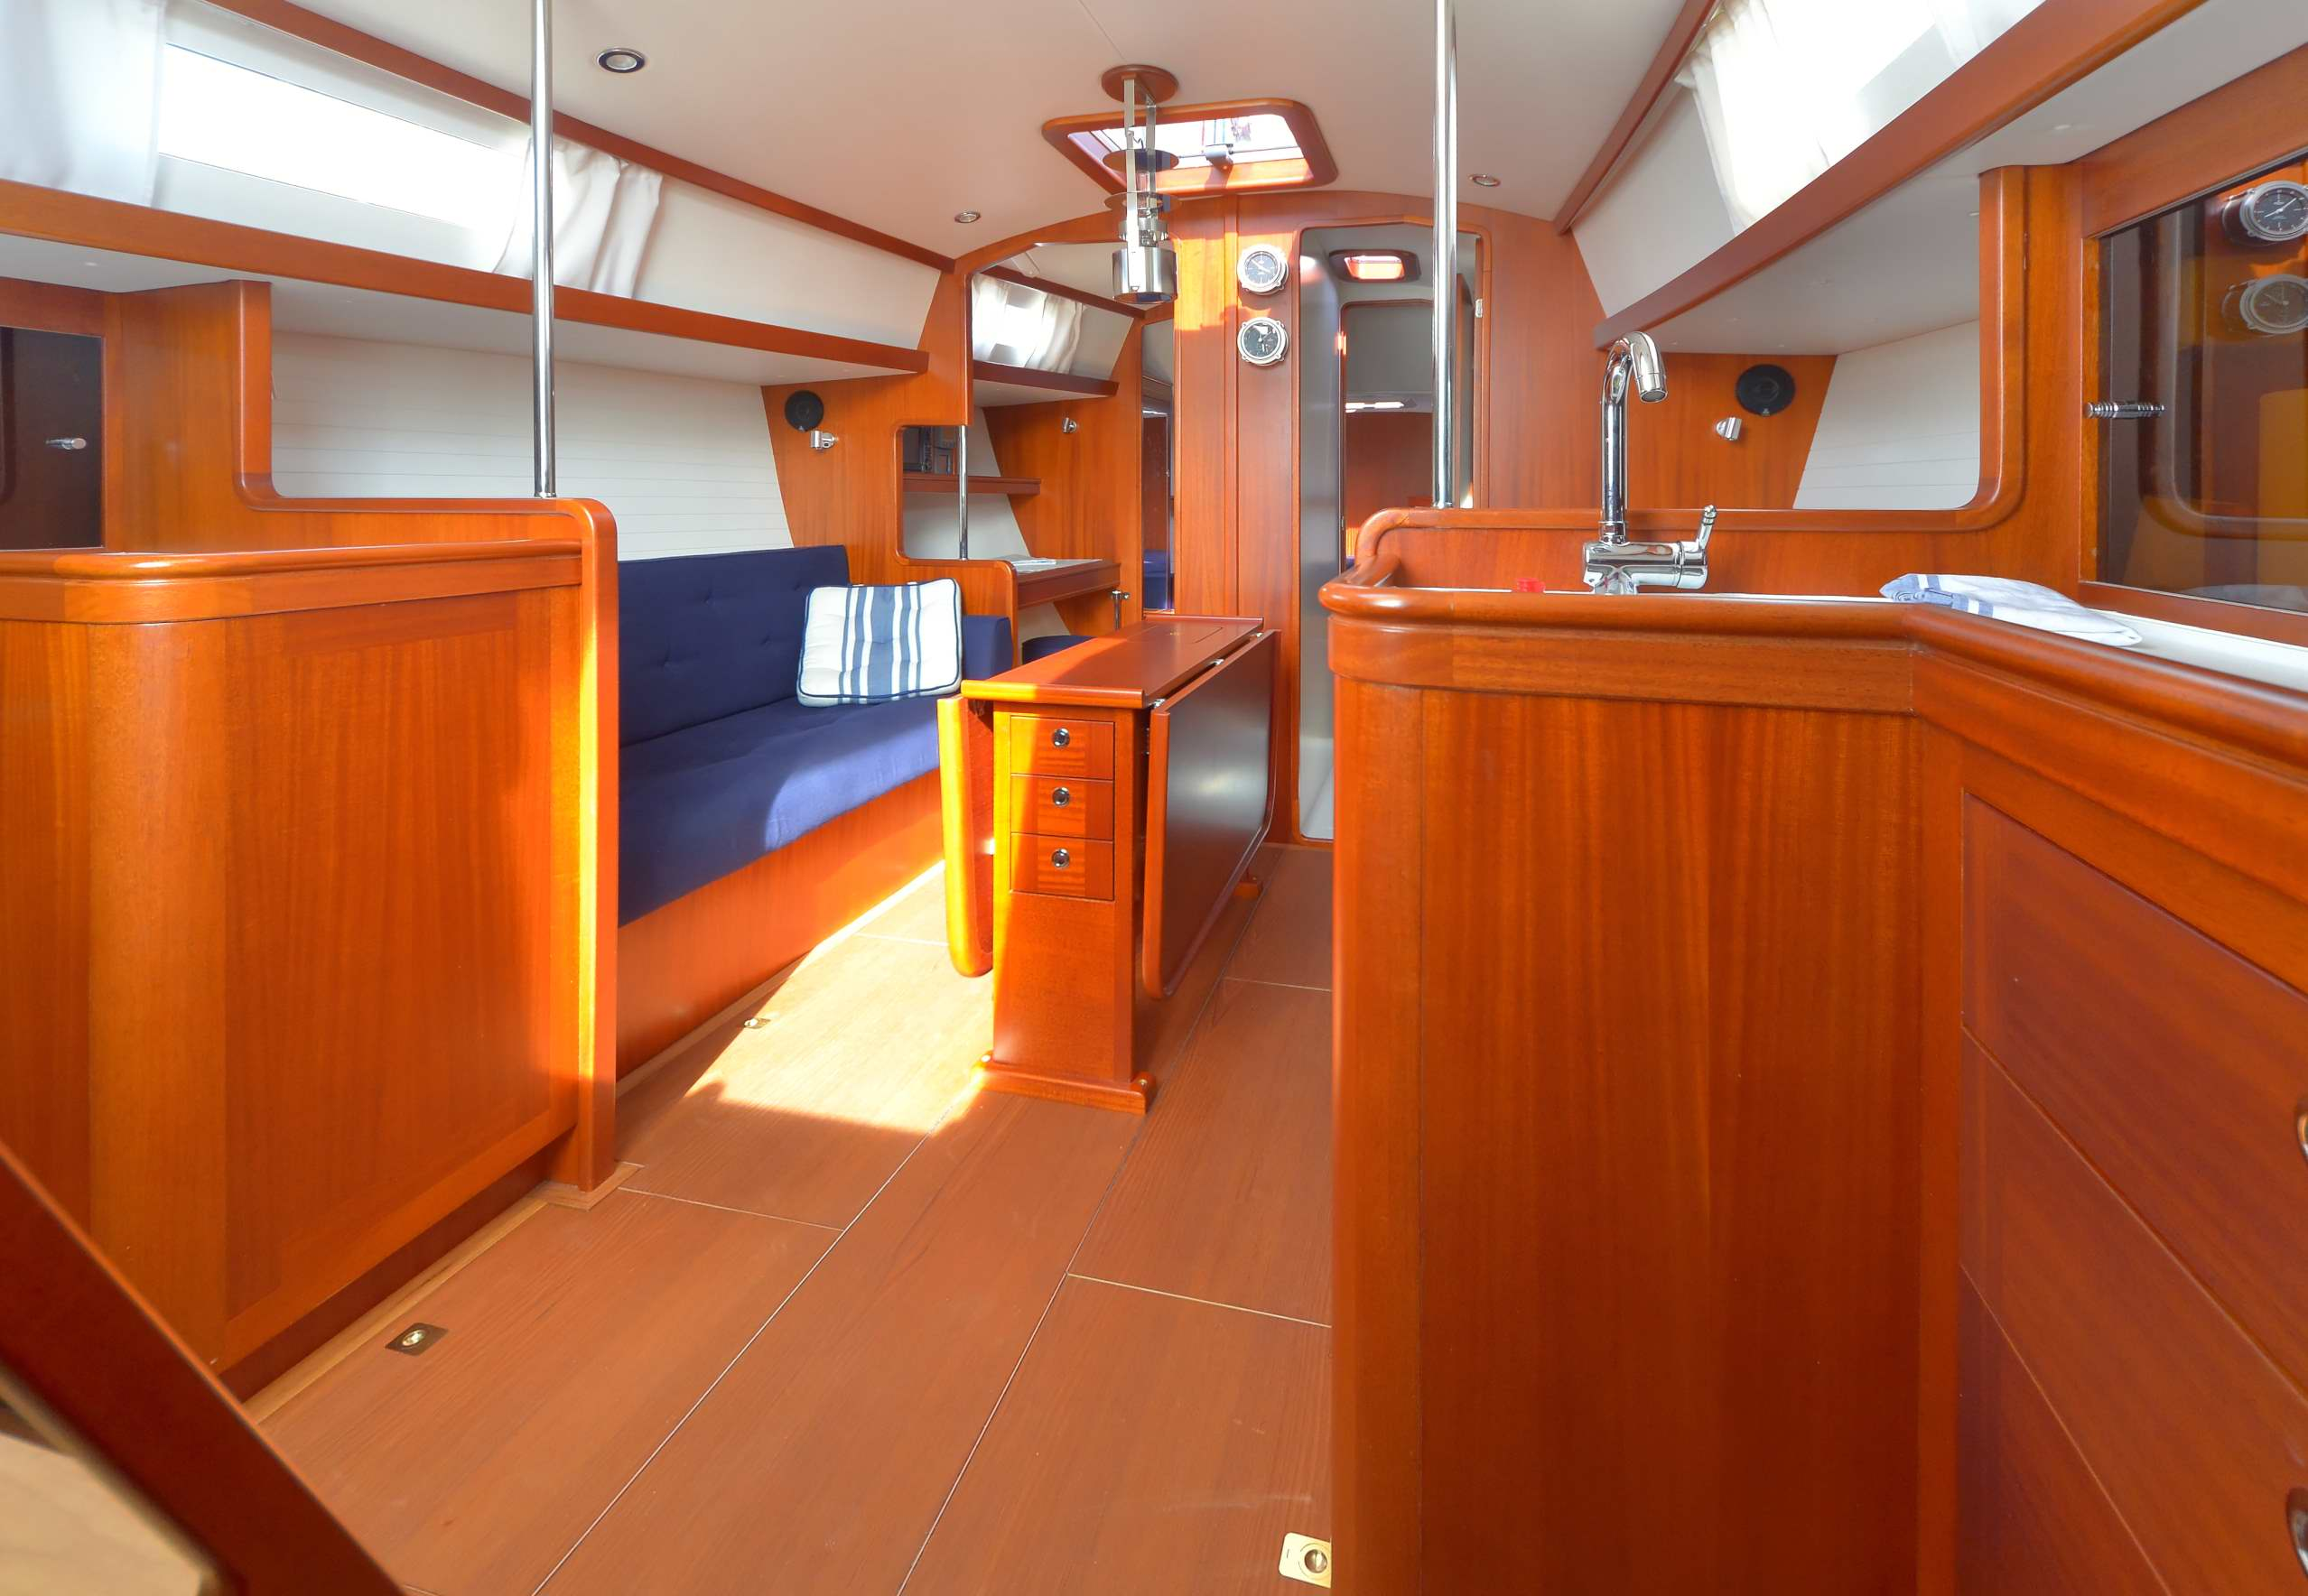 Celeste 36 - cosy and bright